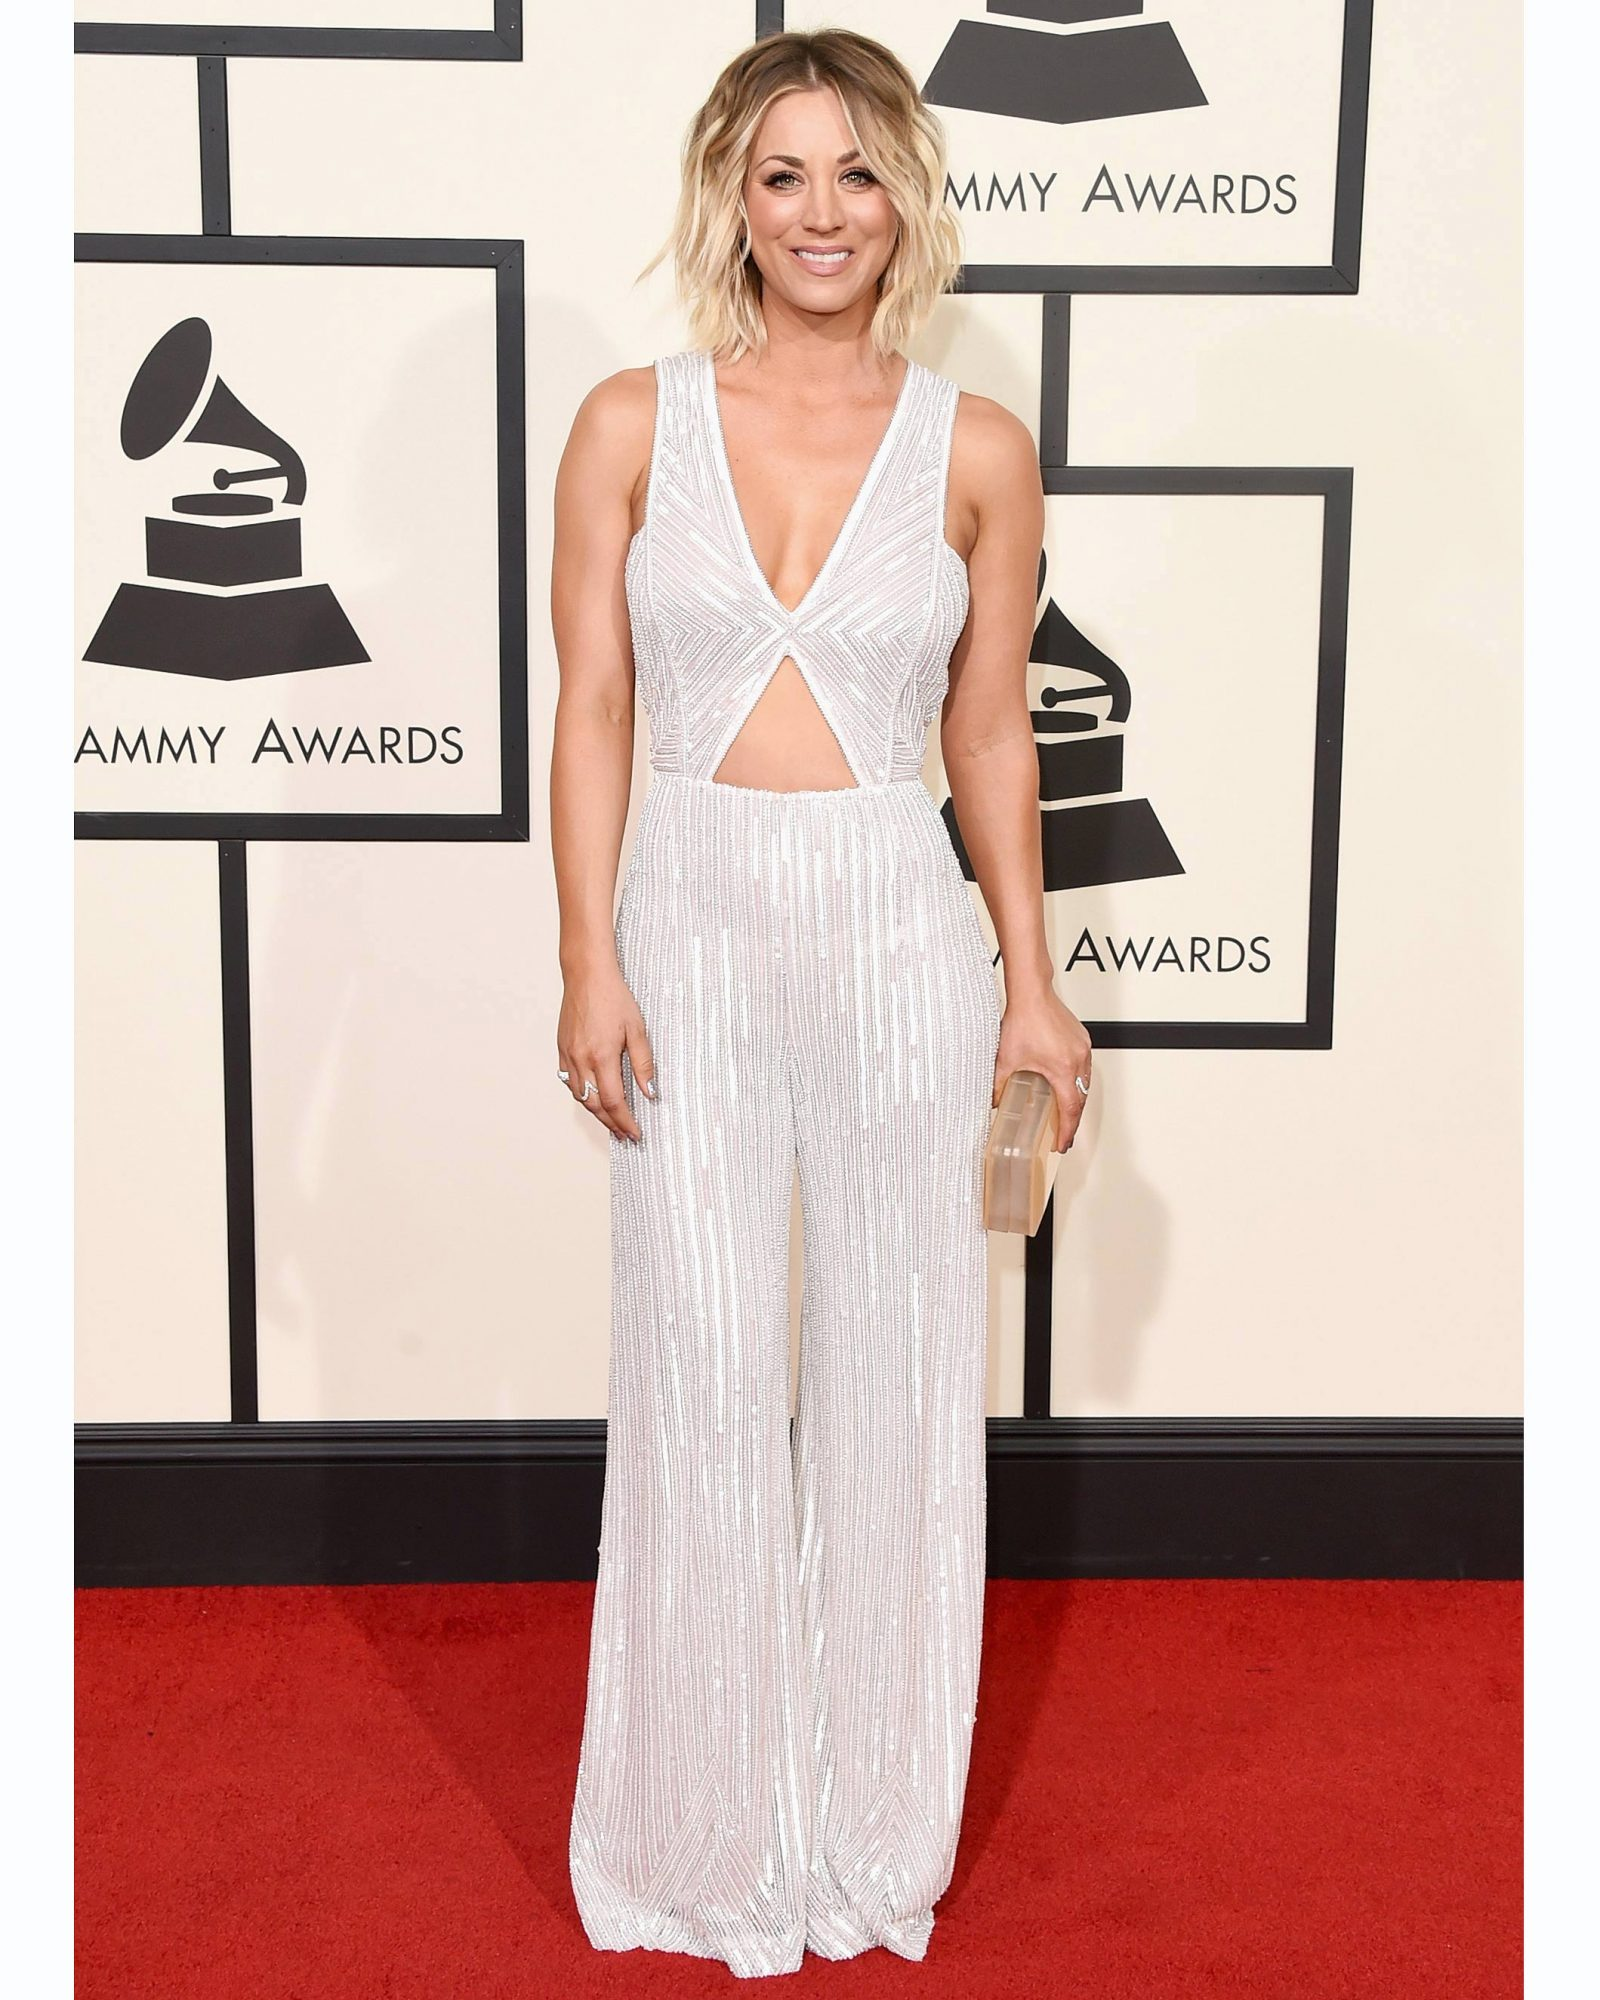 grammy-awards-2016-dresses-kaley-cuoco-0216.jpg